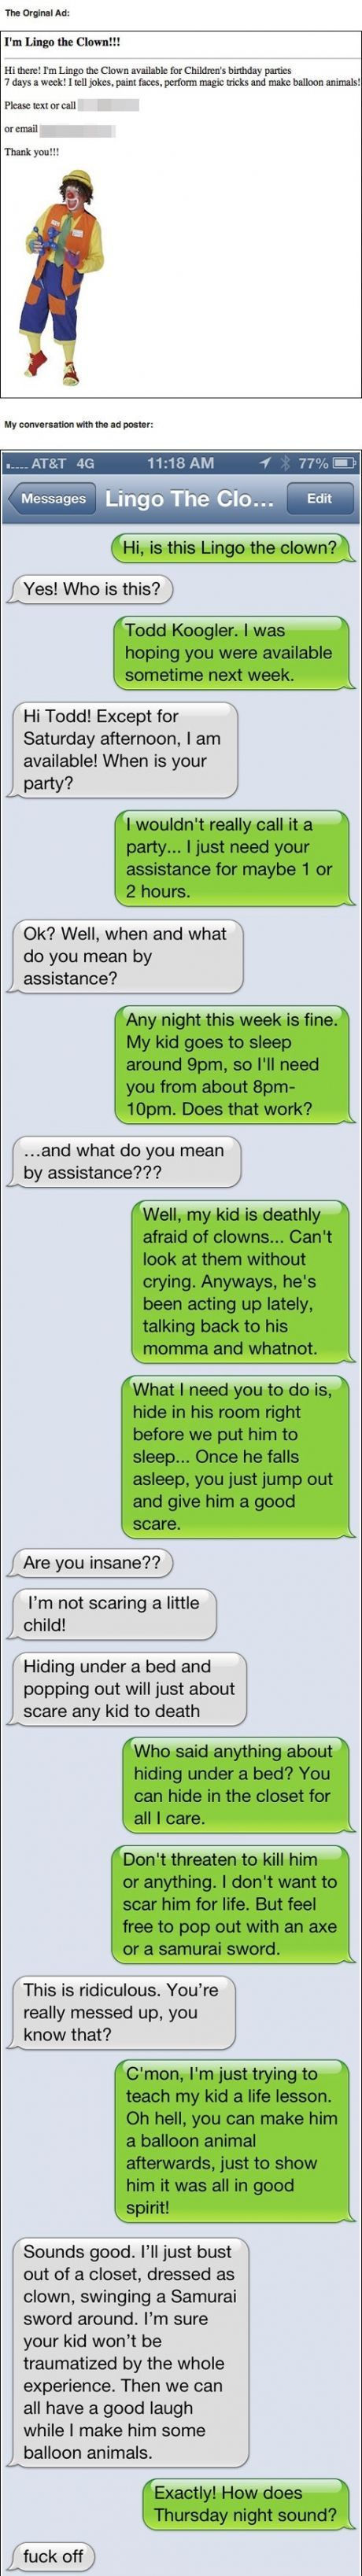 Texting with Lingo the Clown